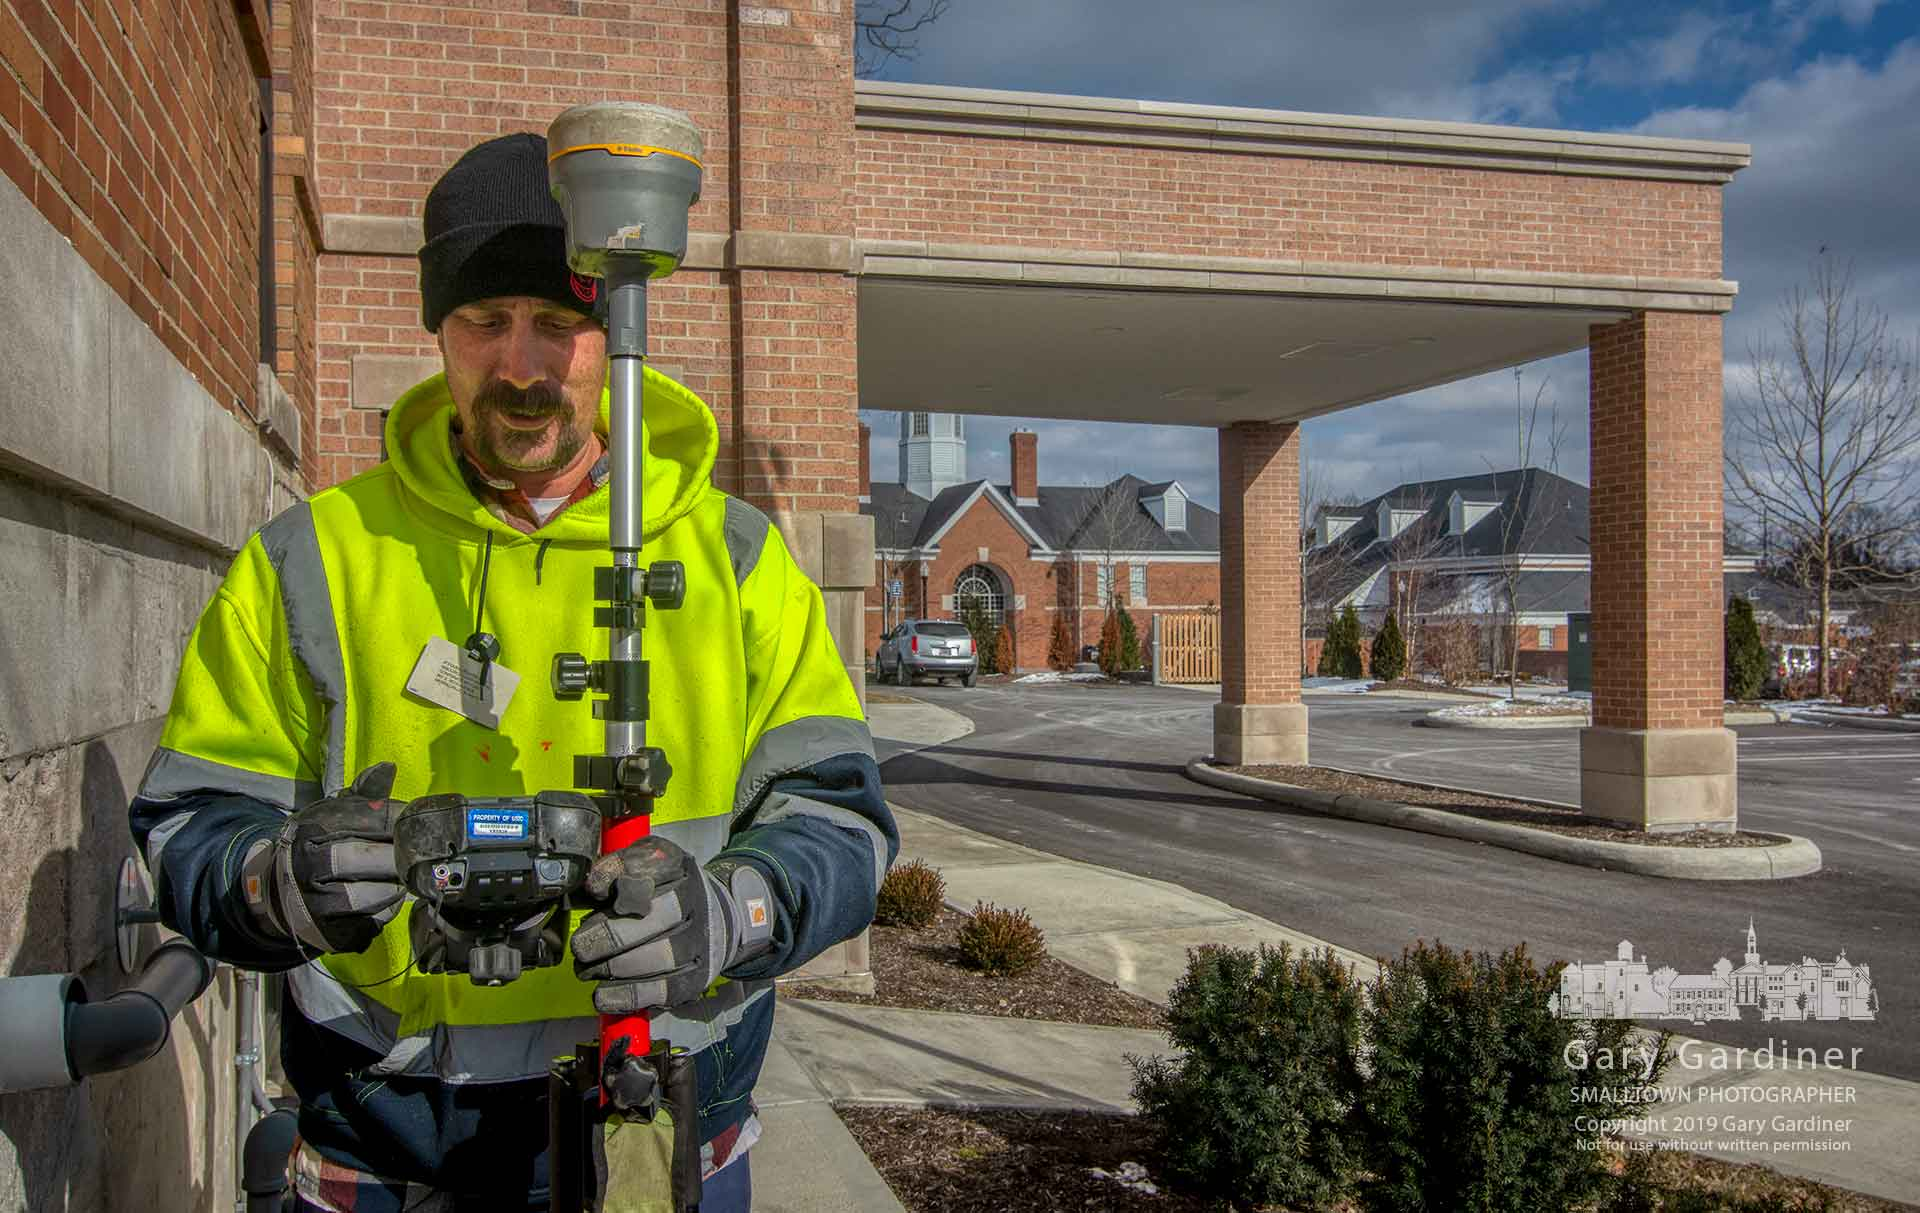 A surveyor uses a GPS system to mark the location of gas lines under streets and leading to structures in Uptown Westerville as Columbus Gas prepares to upgrade sections of its service. My Final Photo for March 6, 2019.